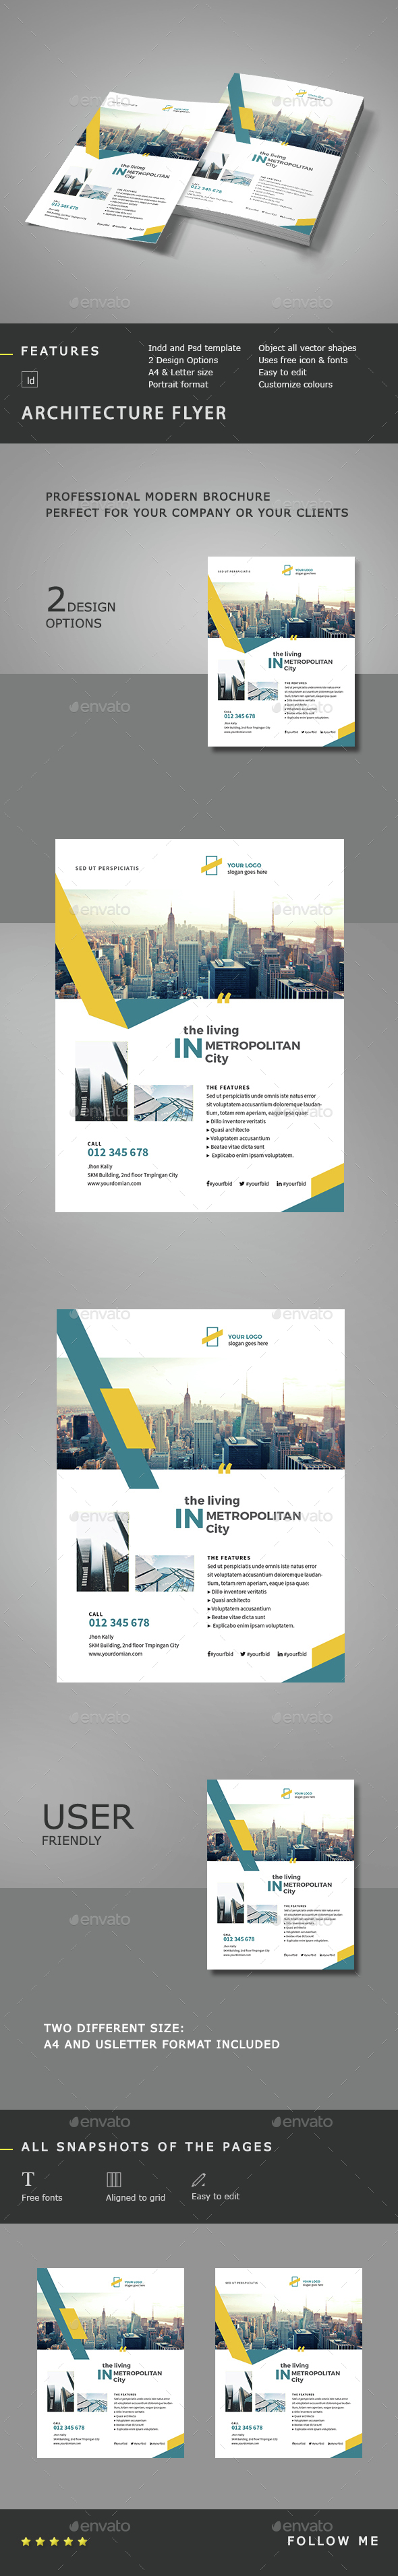 Architecture Flyer Template - Corporate Flyers